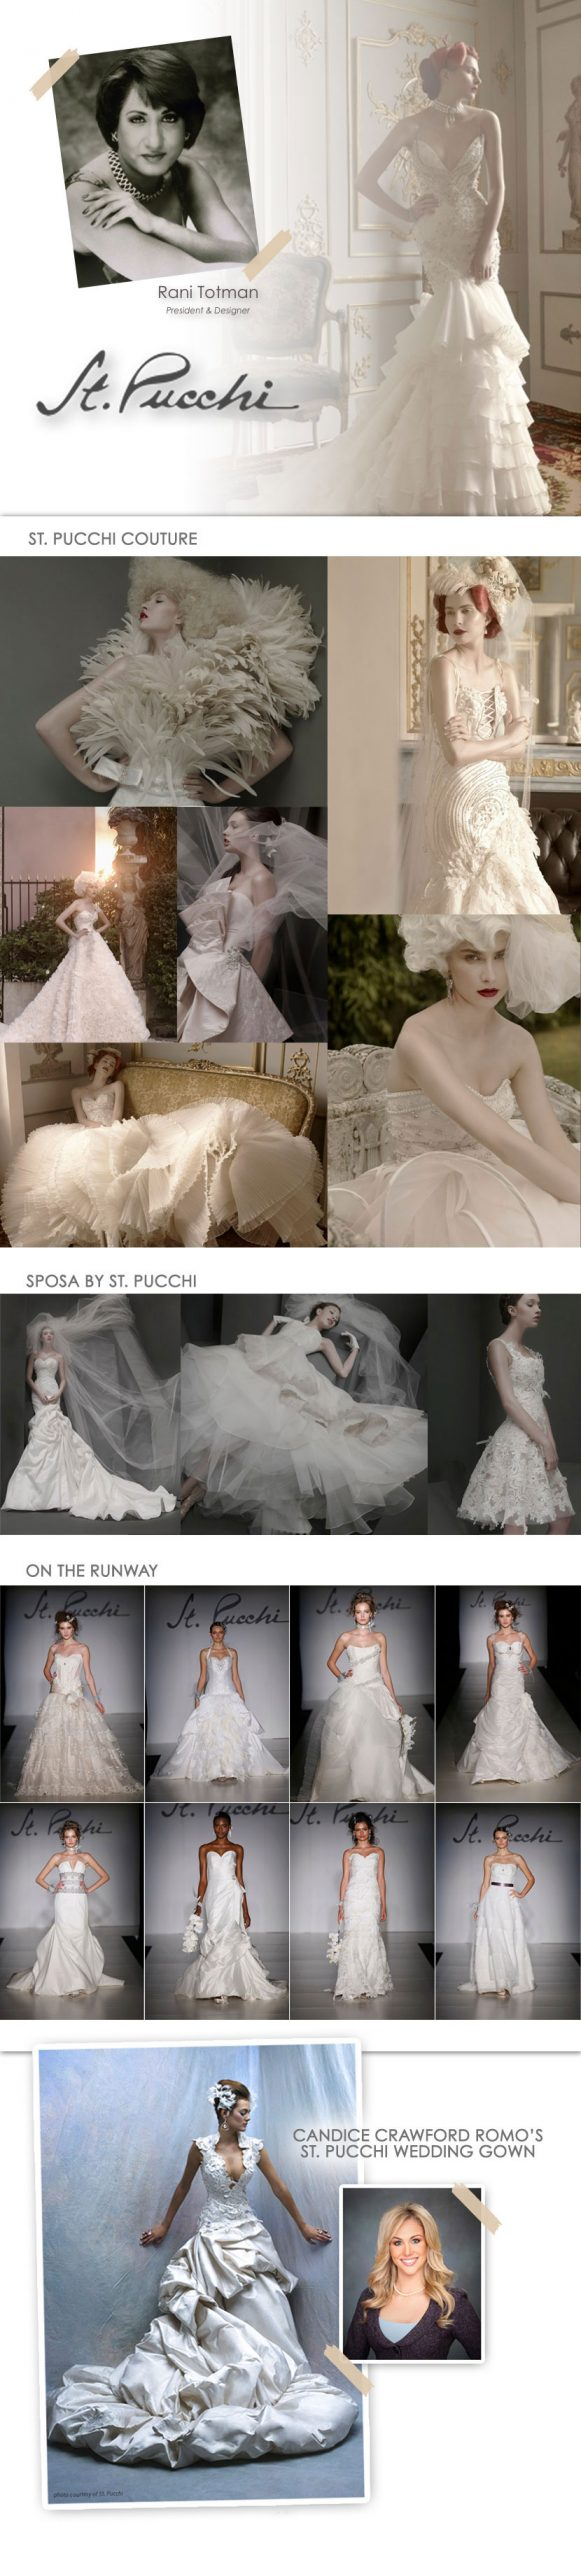 St. Pucchi trunk show at Stardust Celebrations